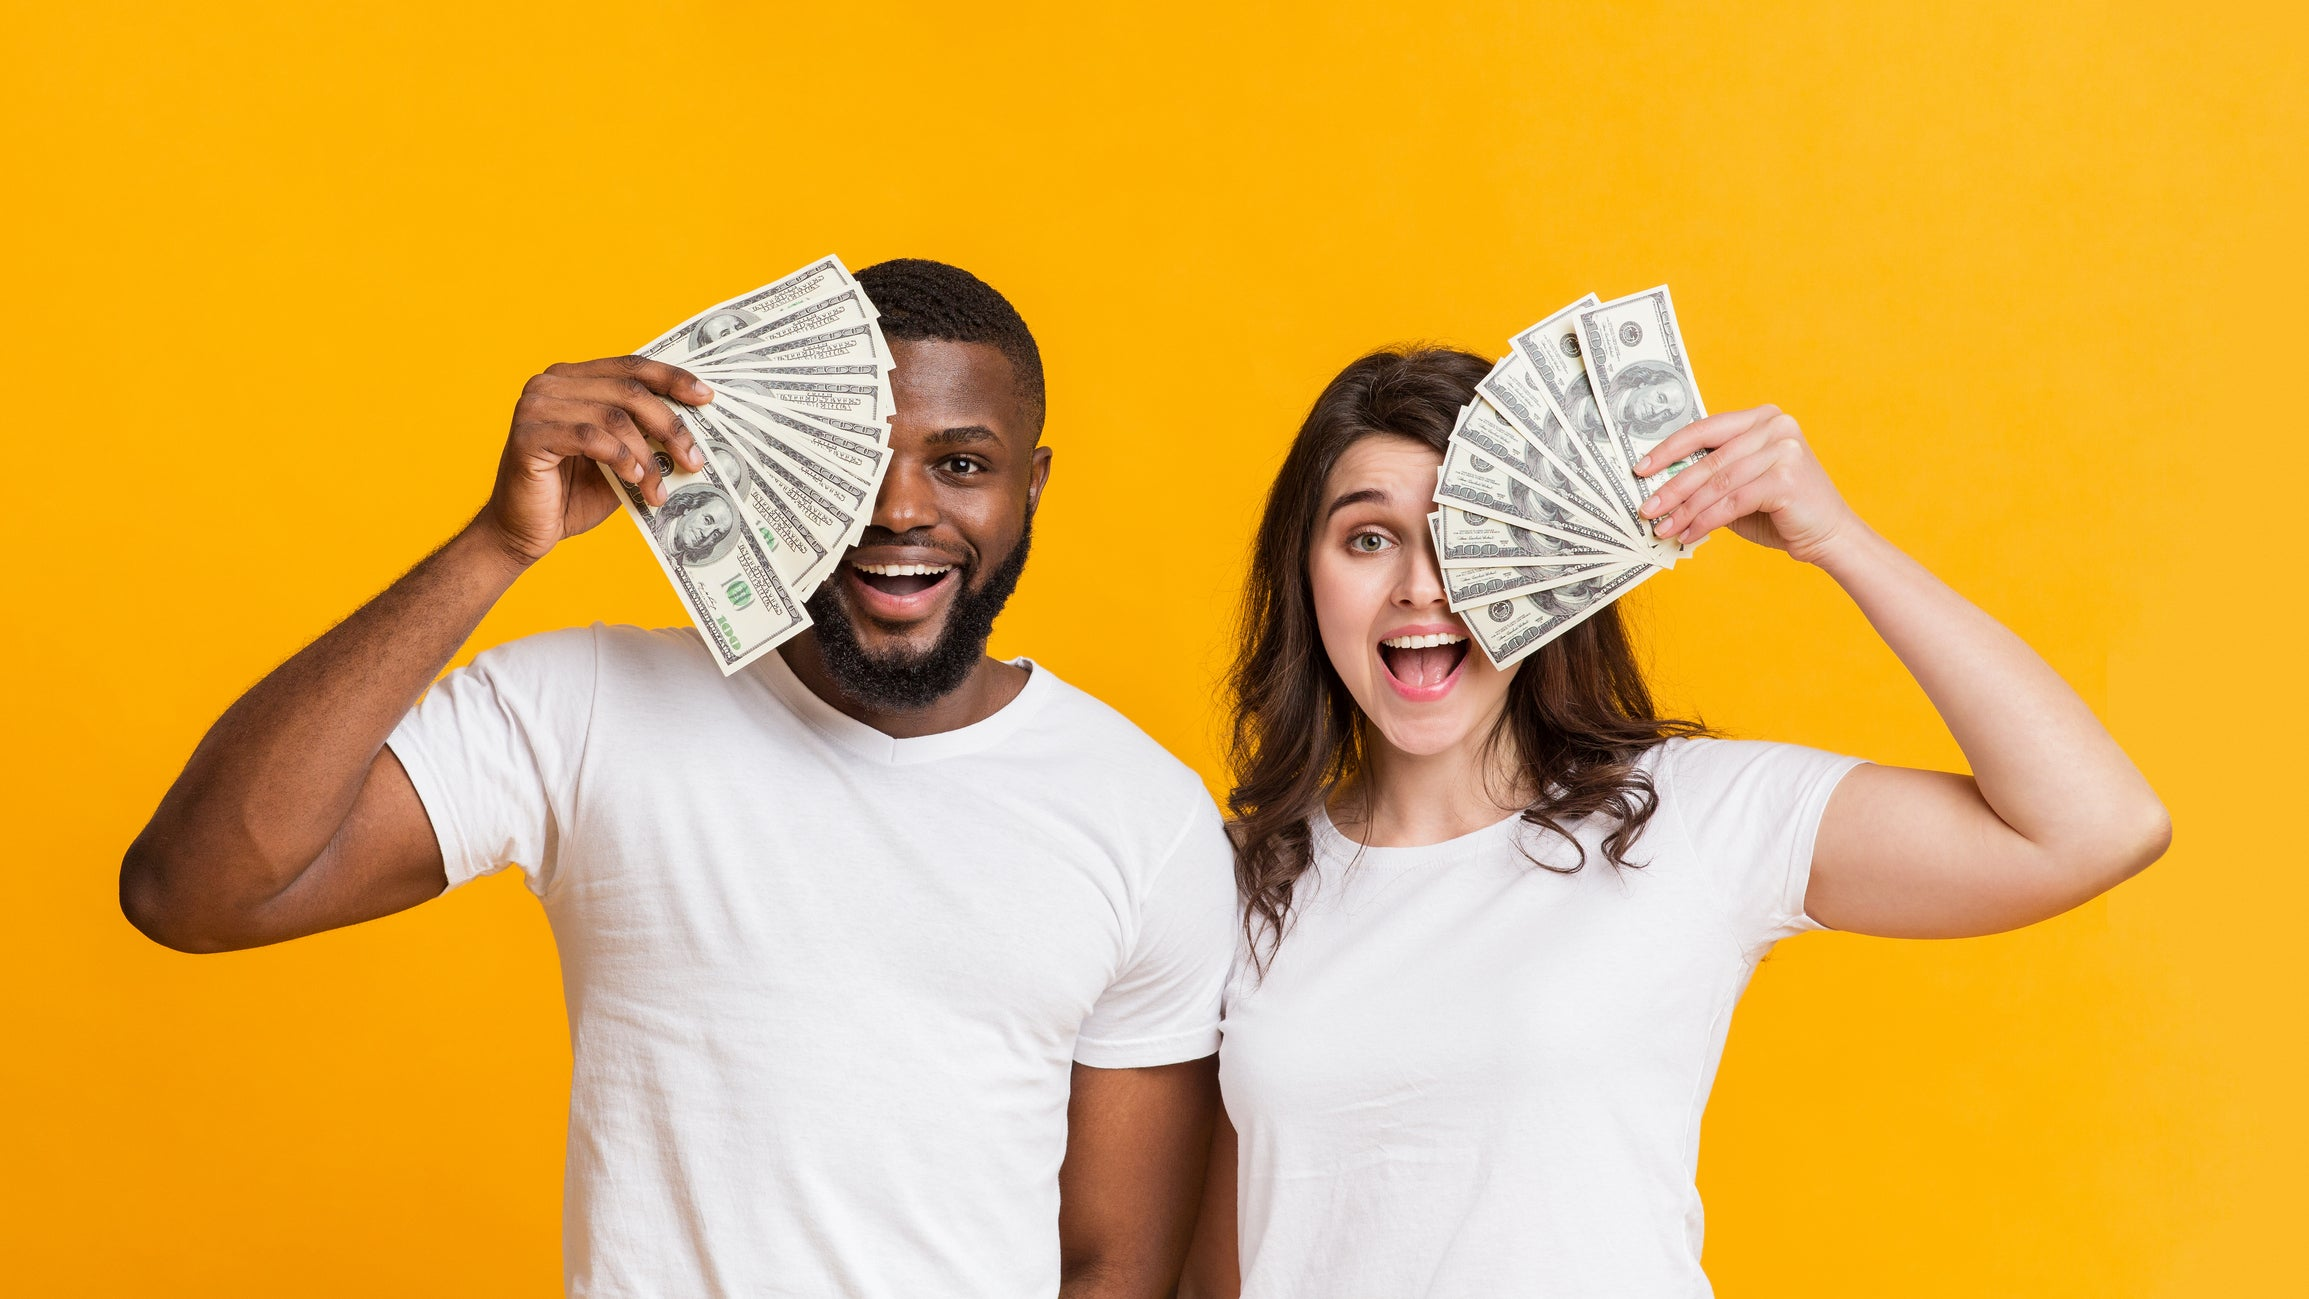 Got $10,000? These 3 Growth Stocks Could Turbocharge Your Financial Future